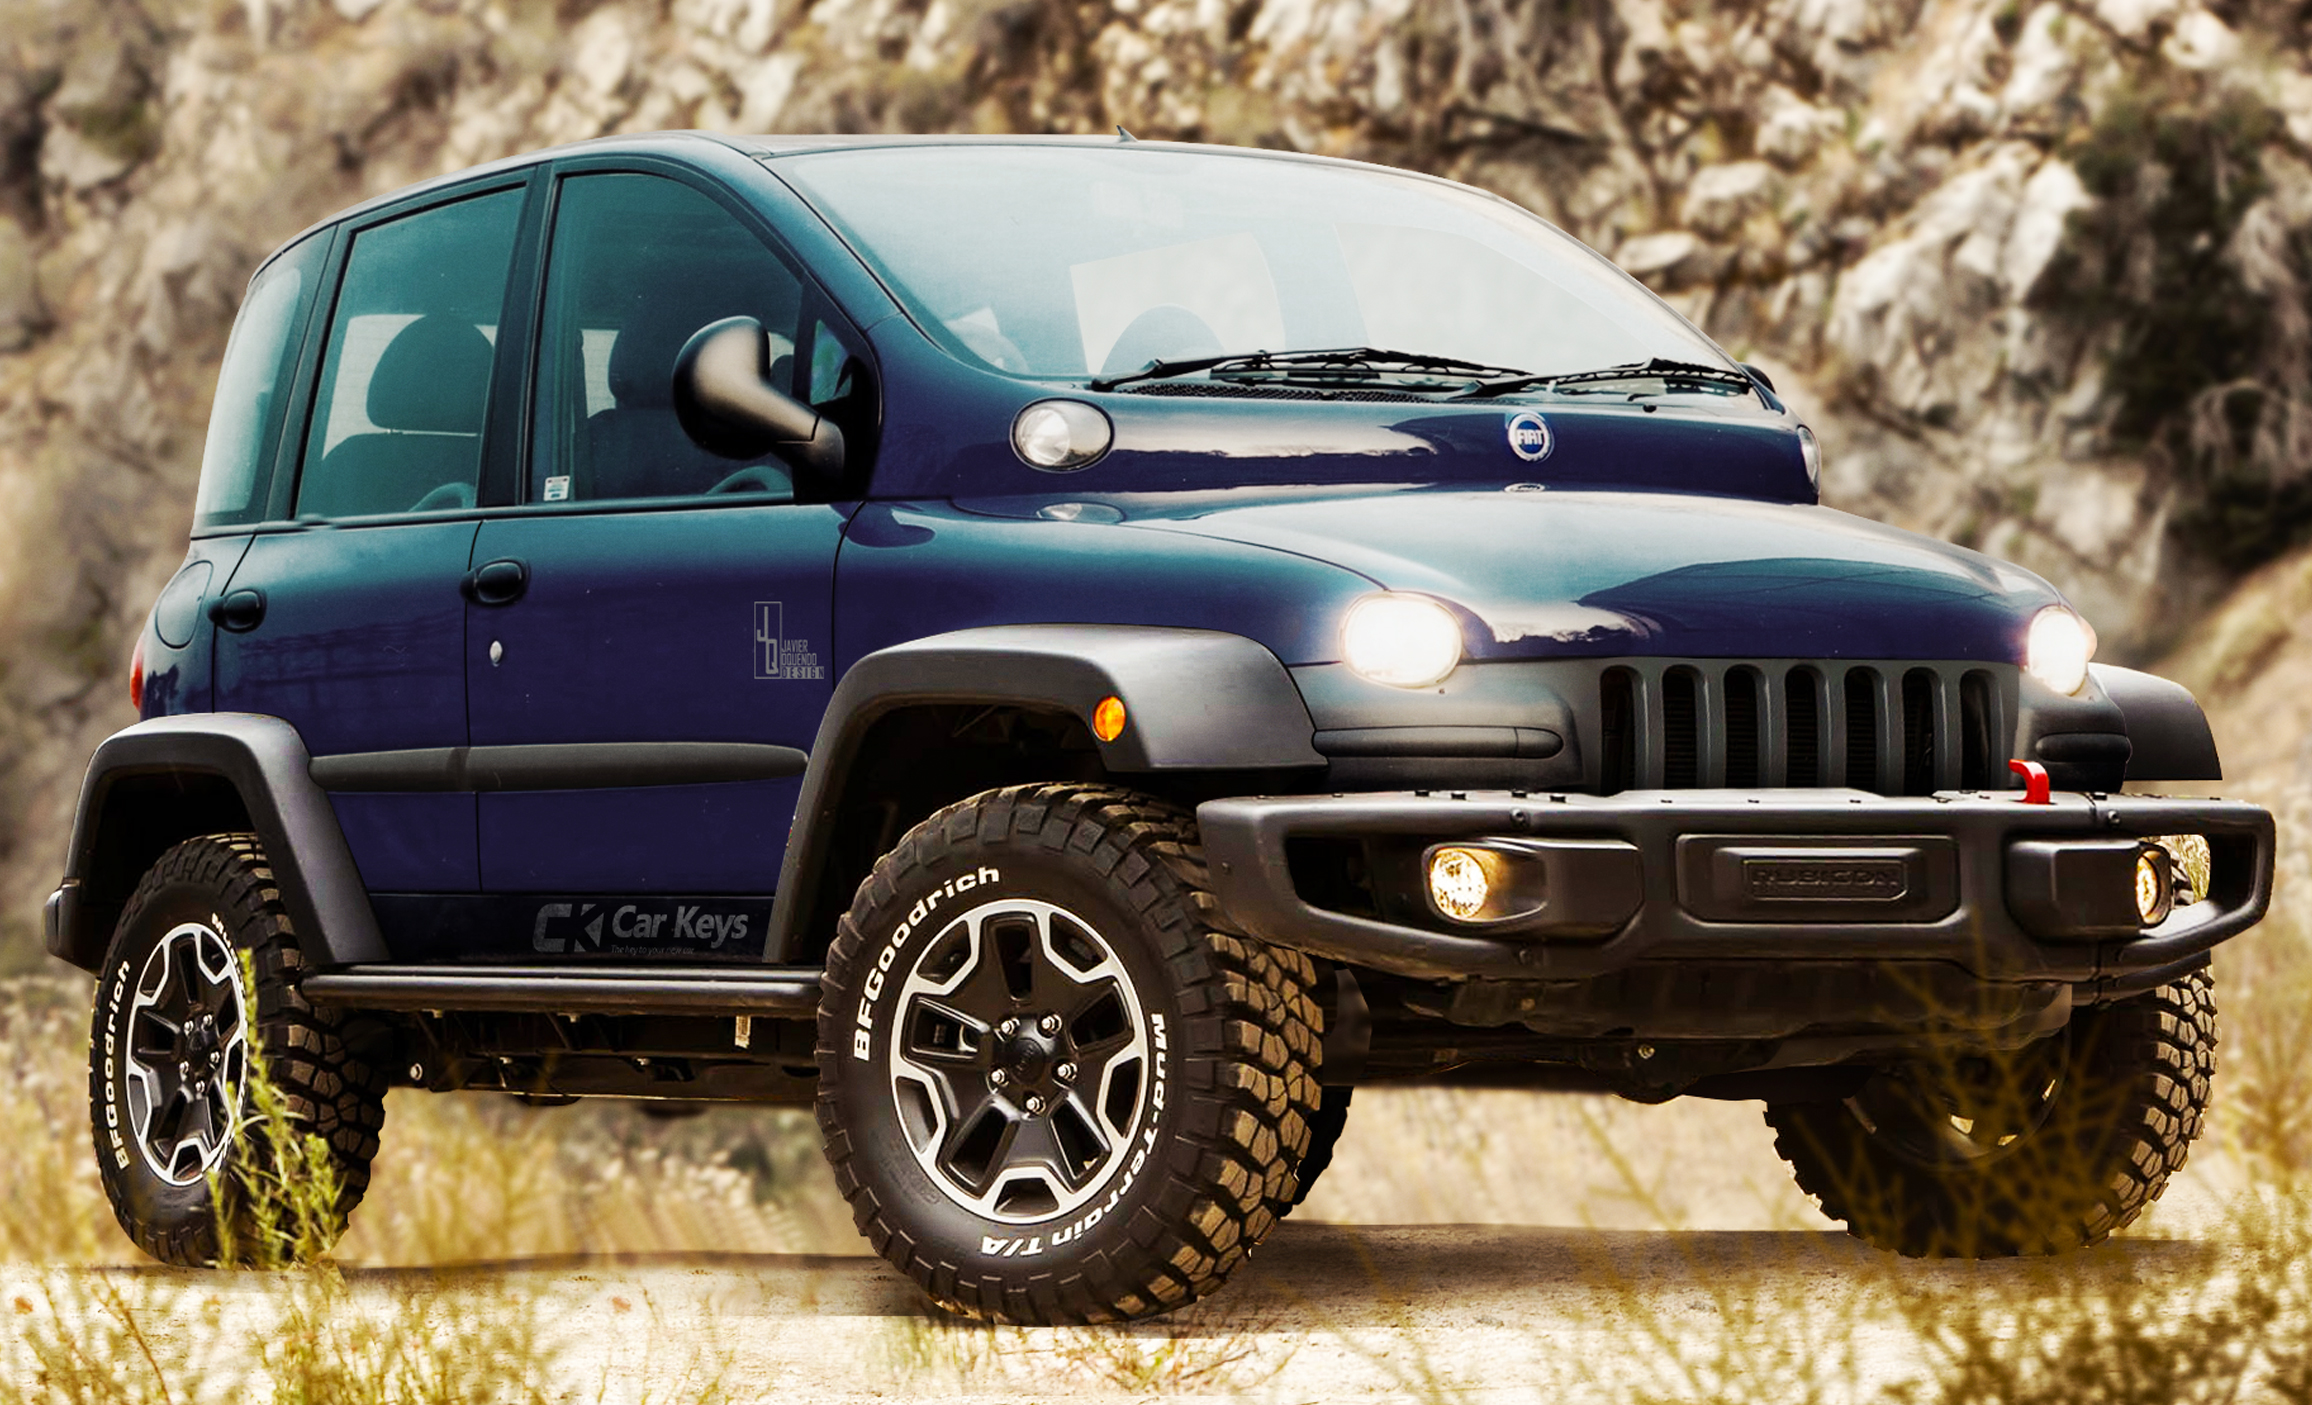 Wrangler Jeep Inside >> These Are the Most Ridiculous Car Mashups You'll Ever See - Car Keys